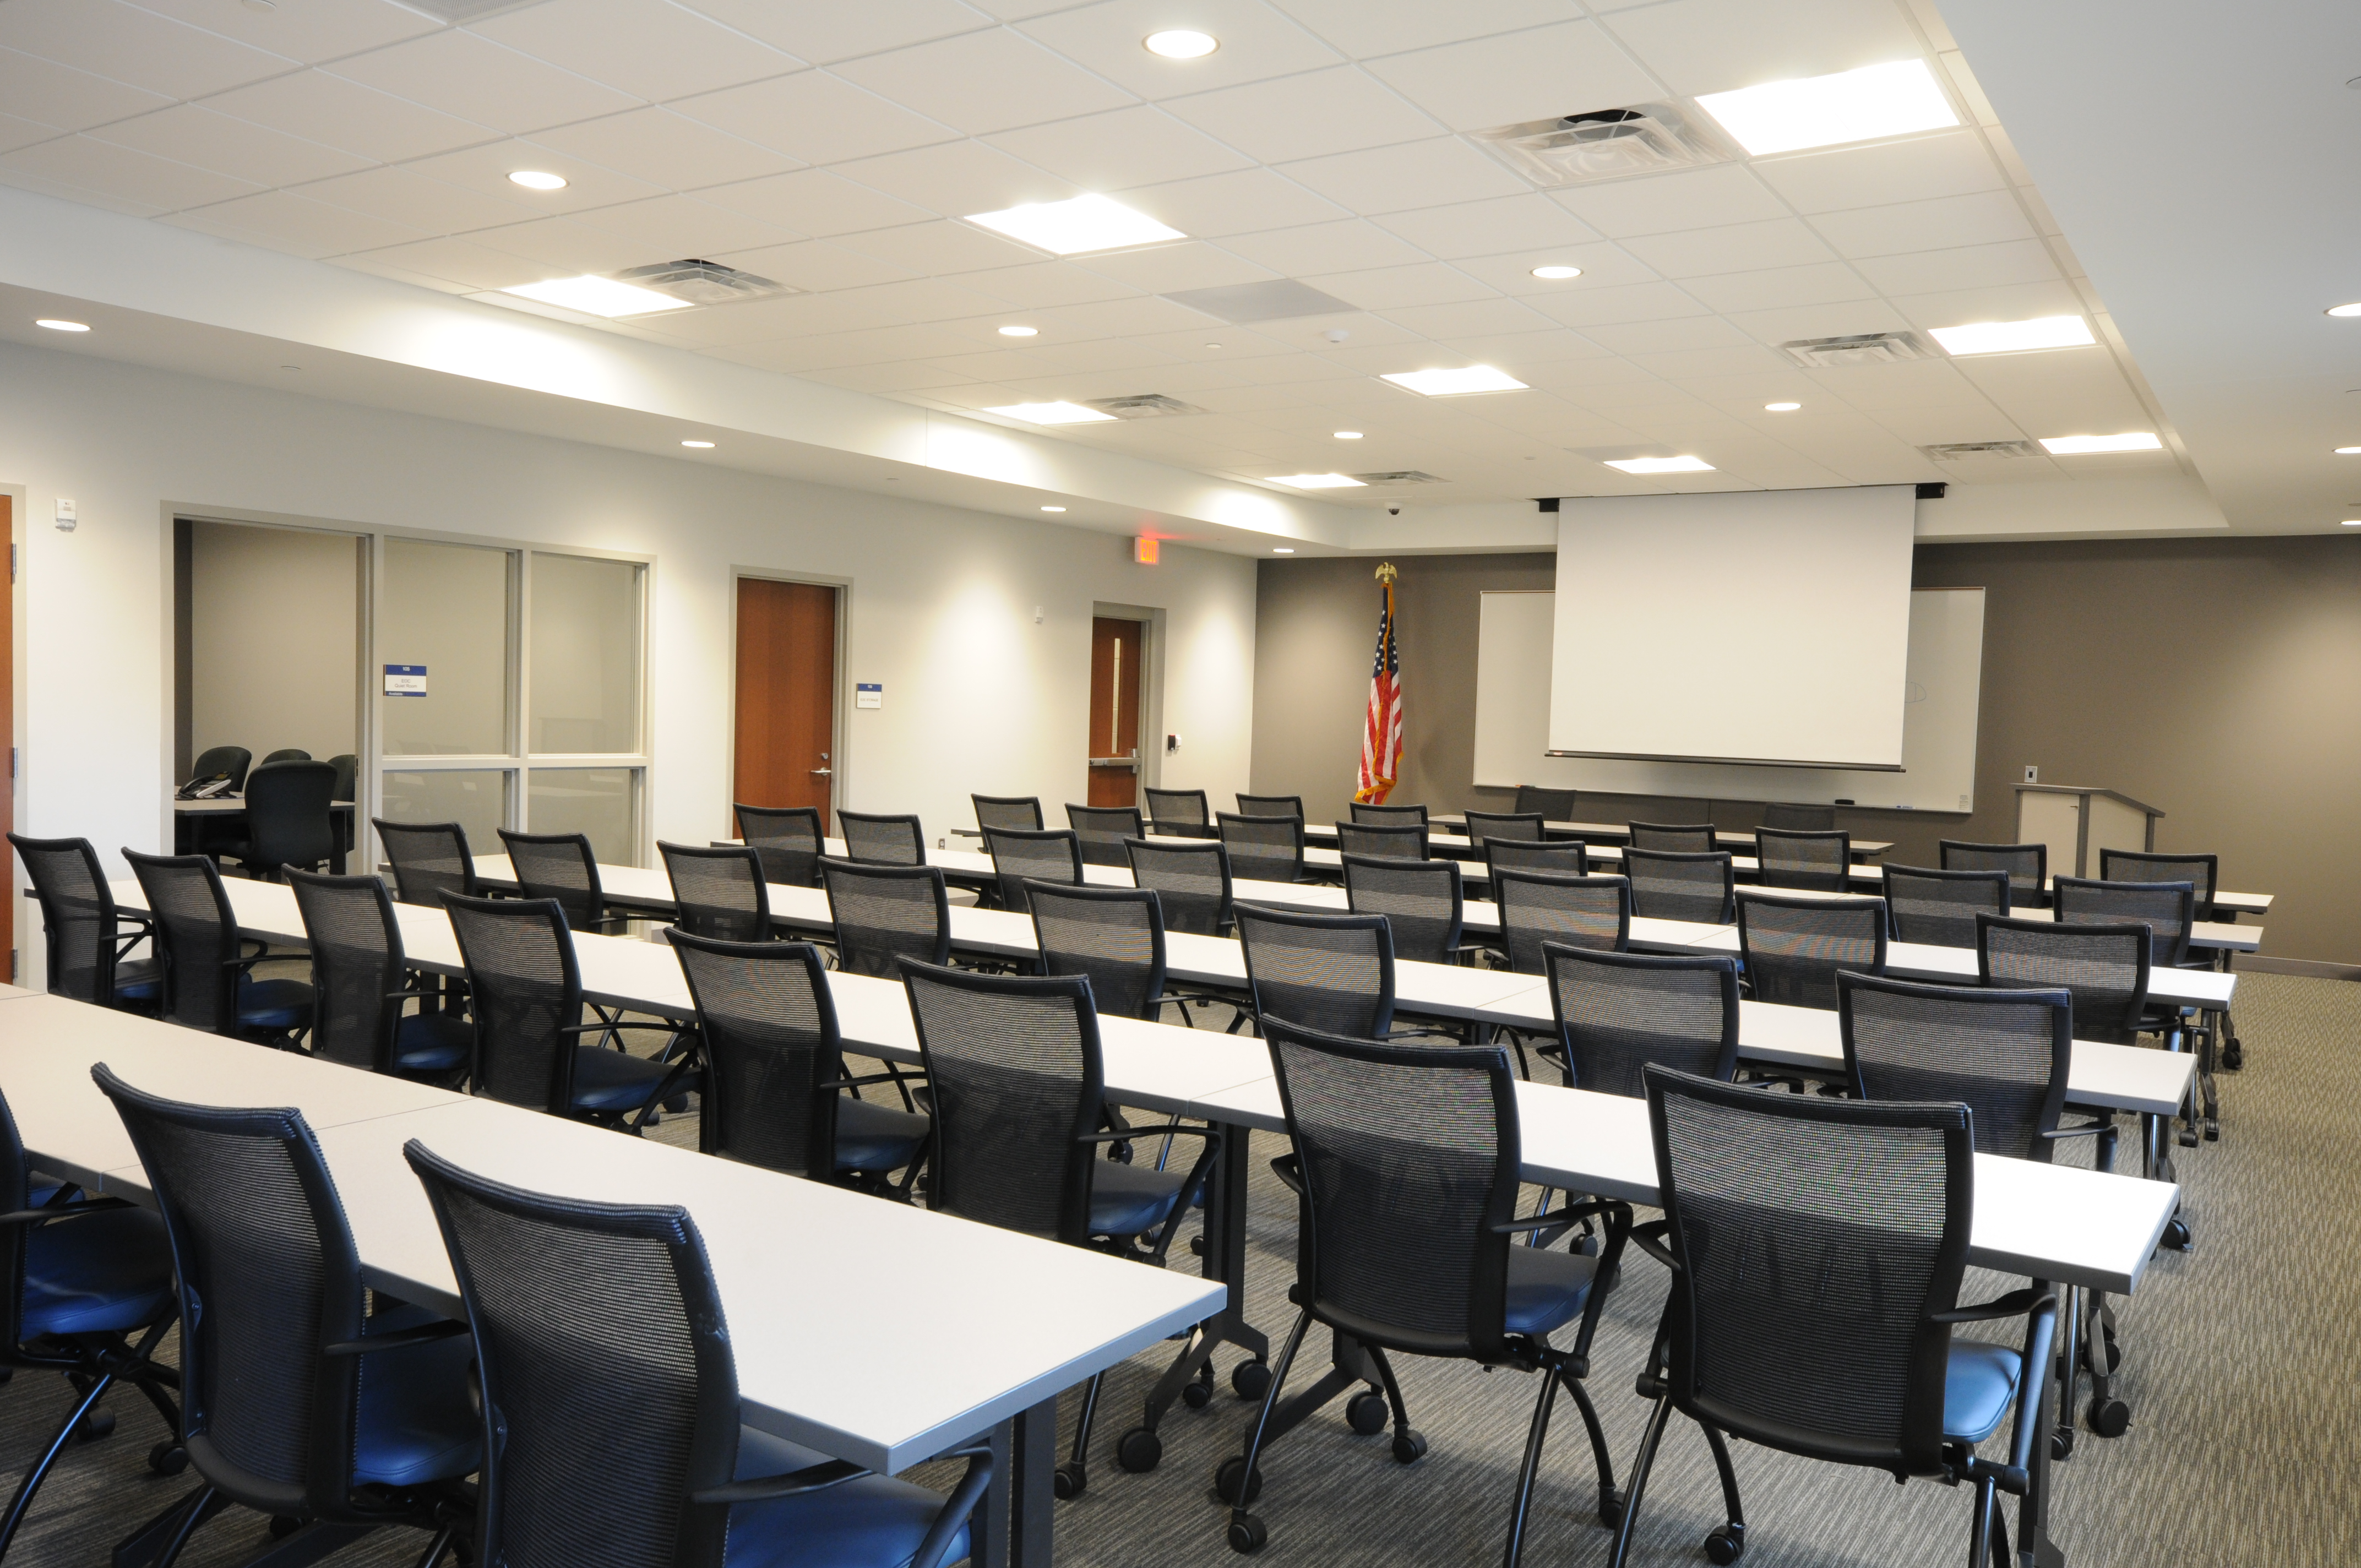 Community Rooms: Improving the Relationship Between Law Enforcement and the Community